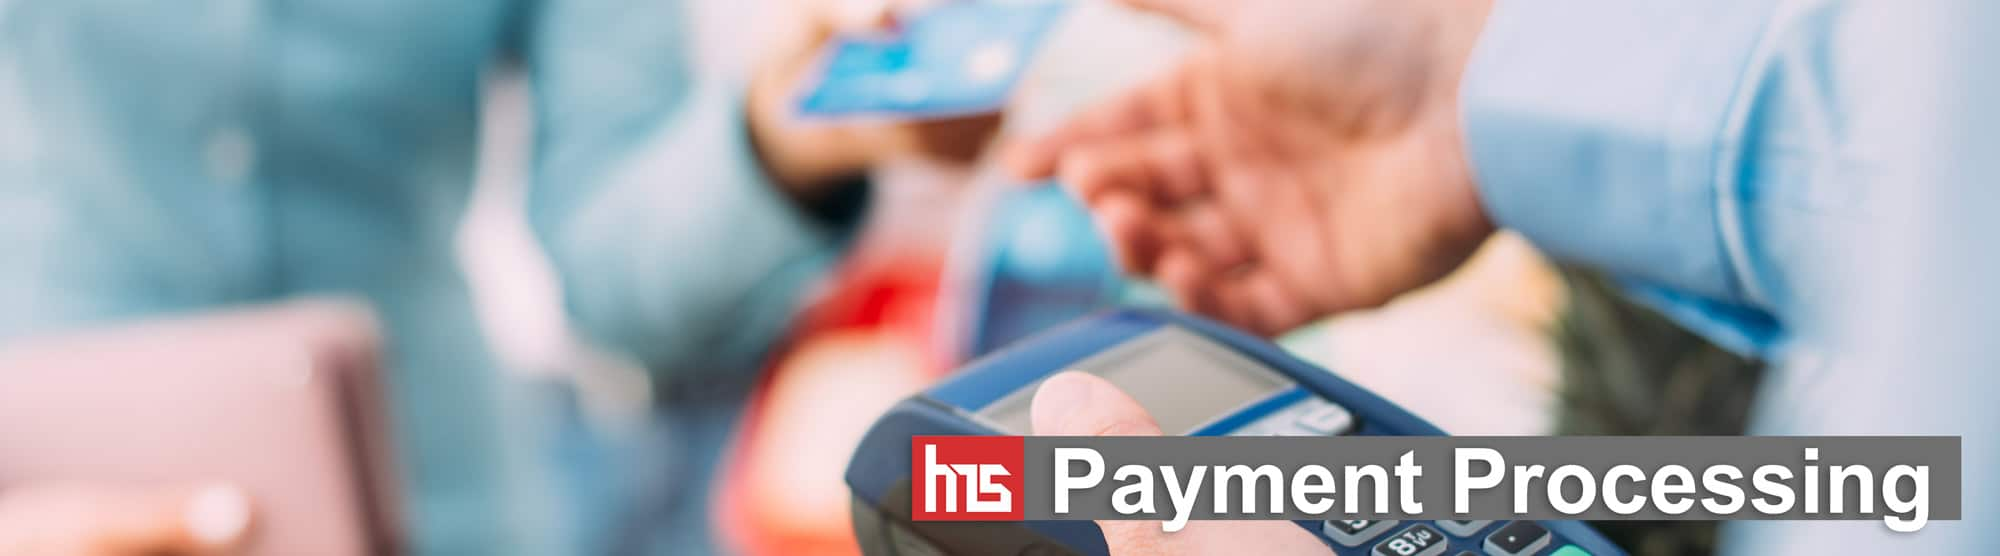 Payment Processing solutions for small businesses